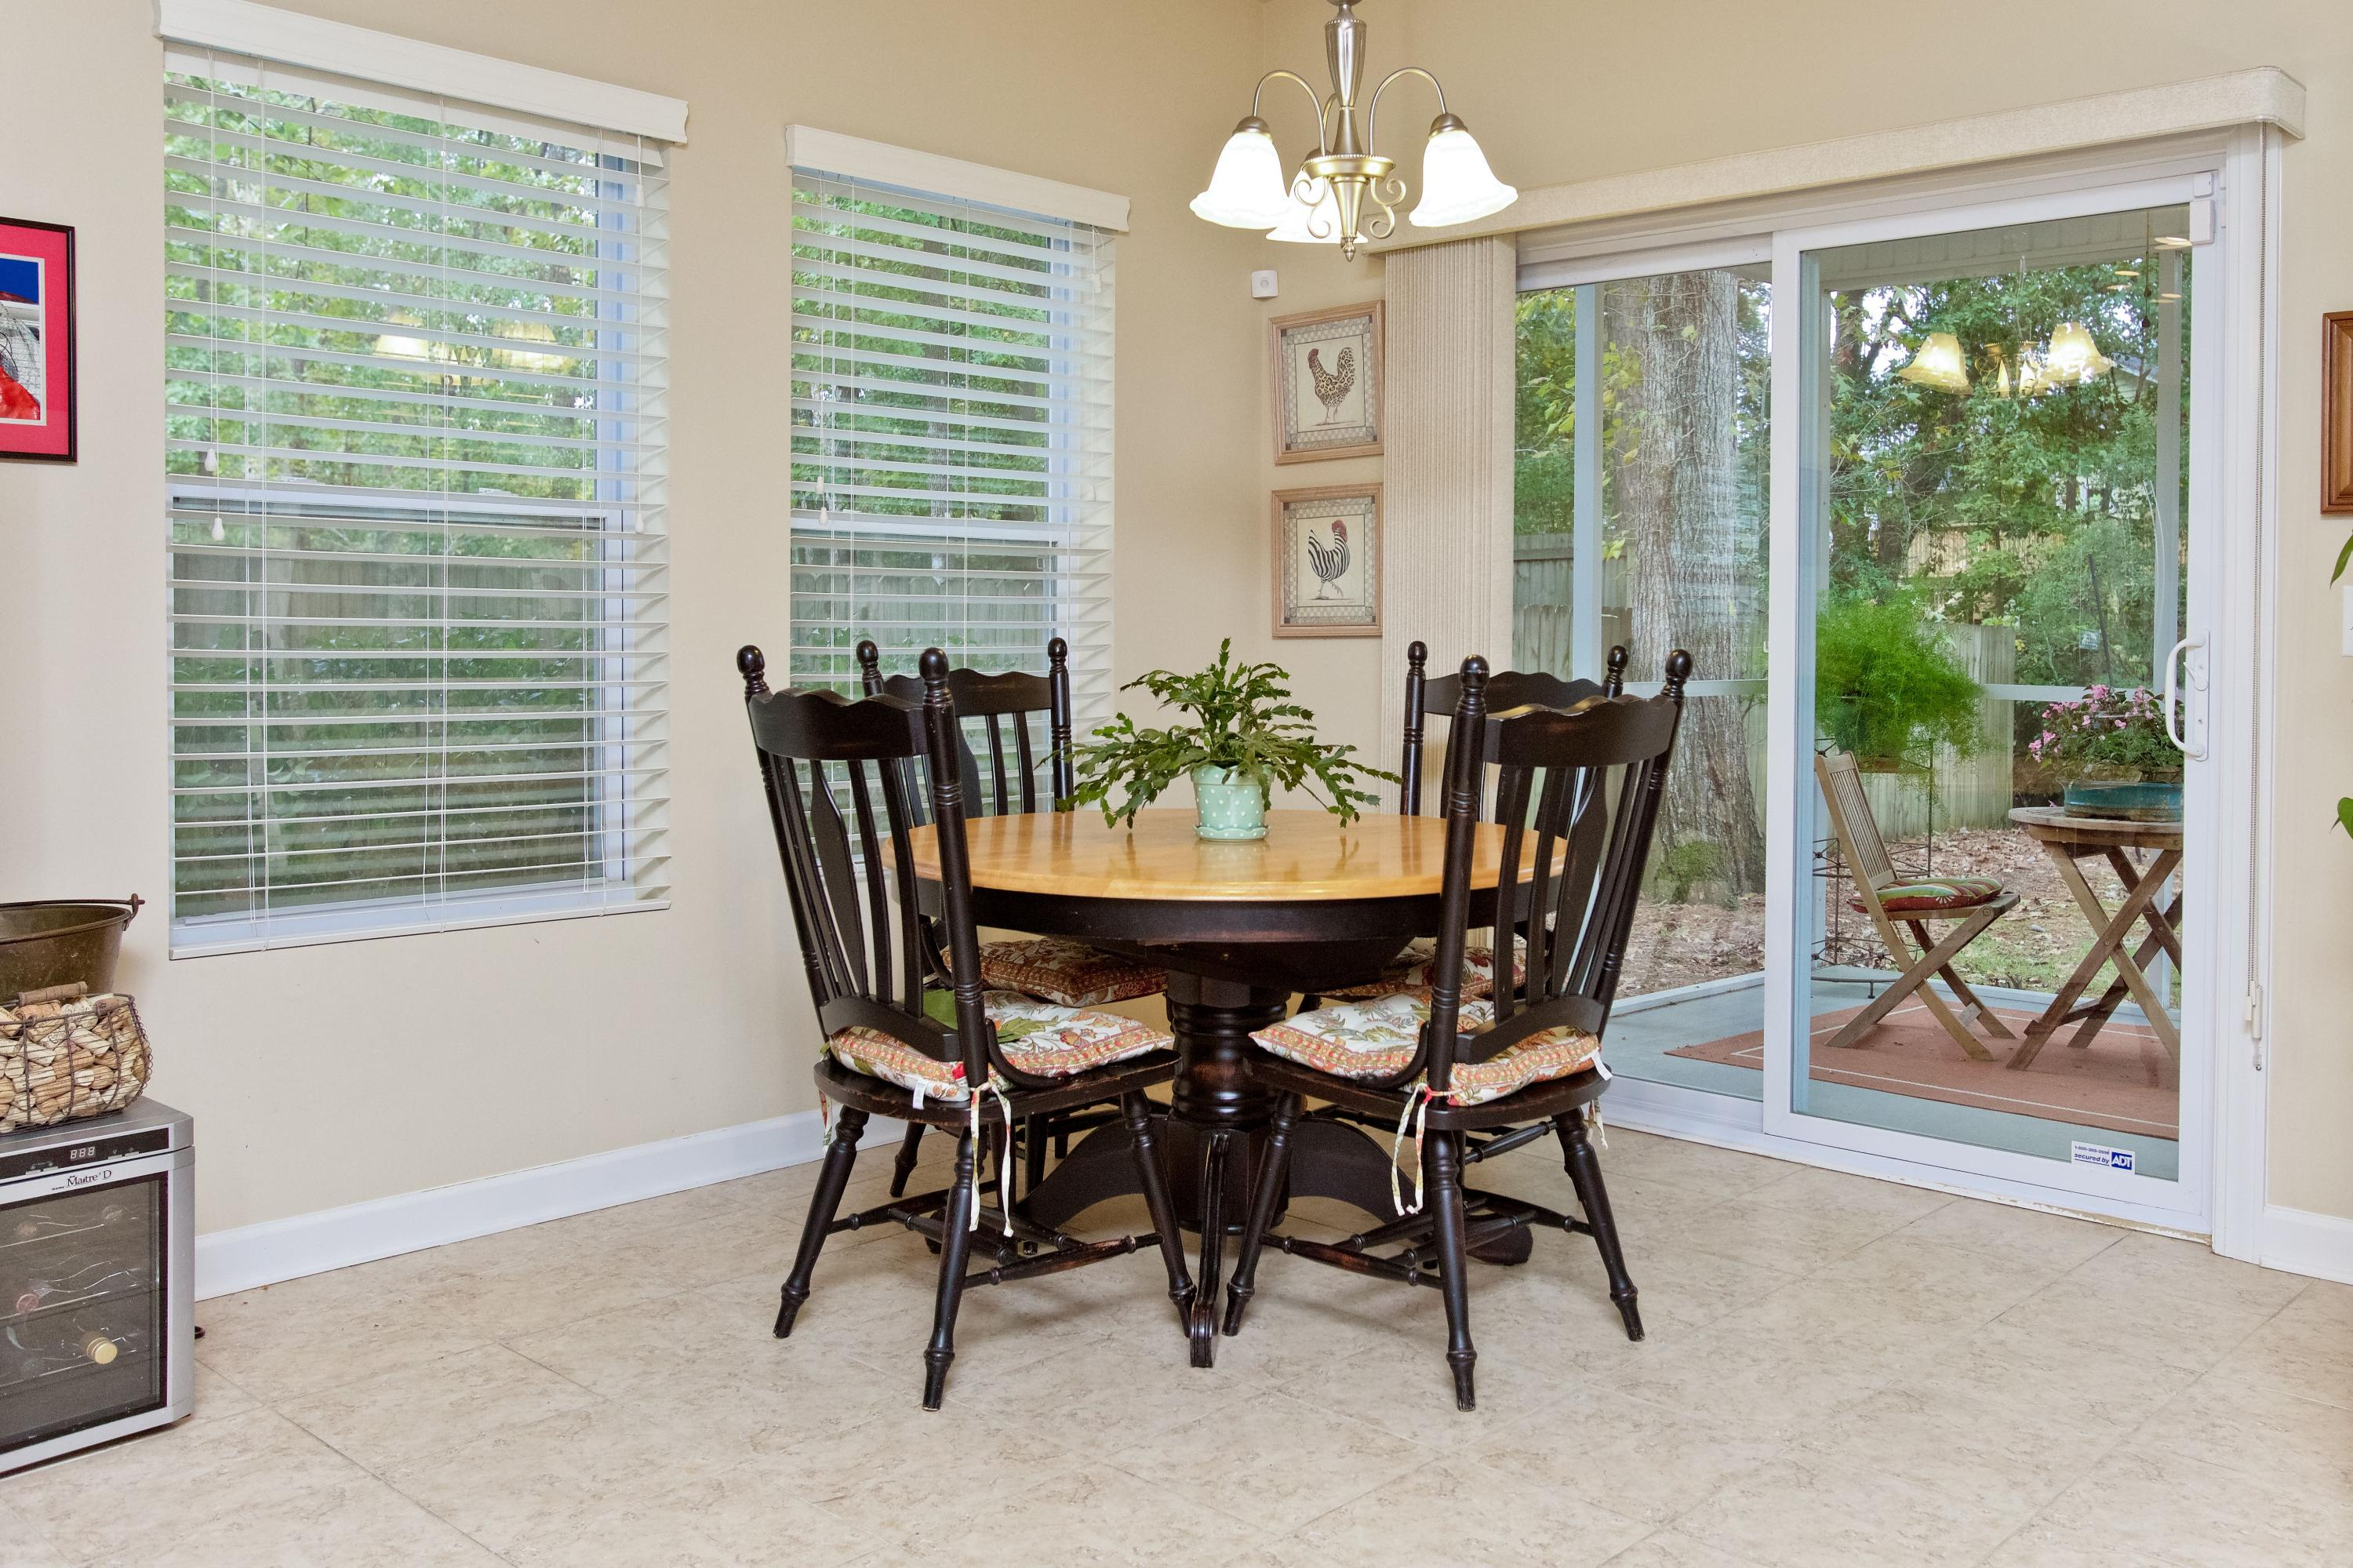 Appian Way Homes For Sale - 8473 Athens, North Charleston, SC - 27